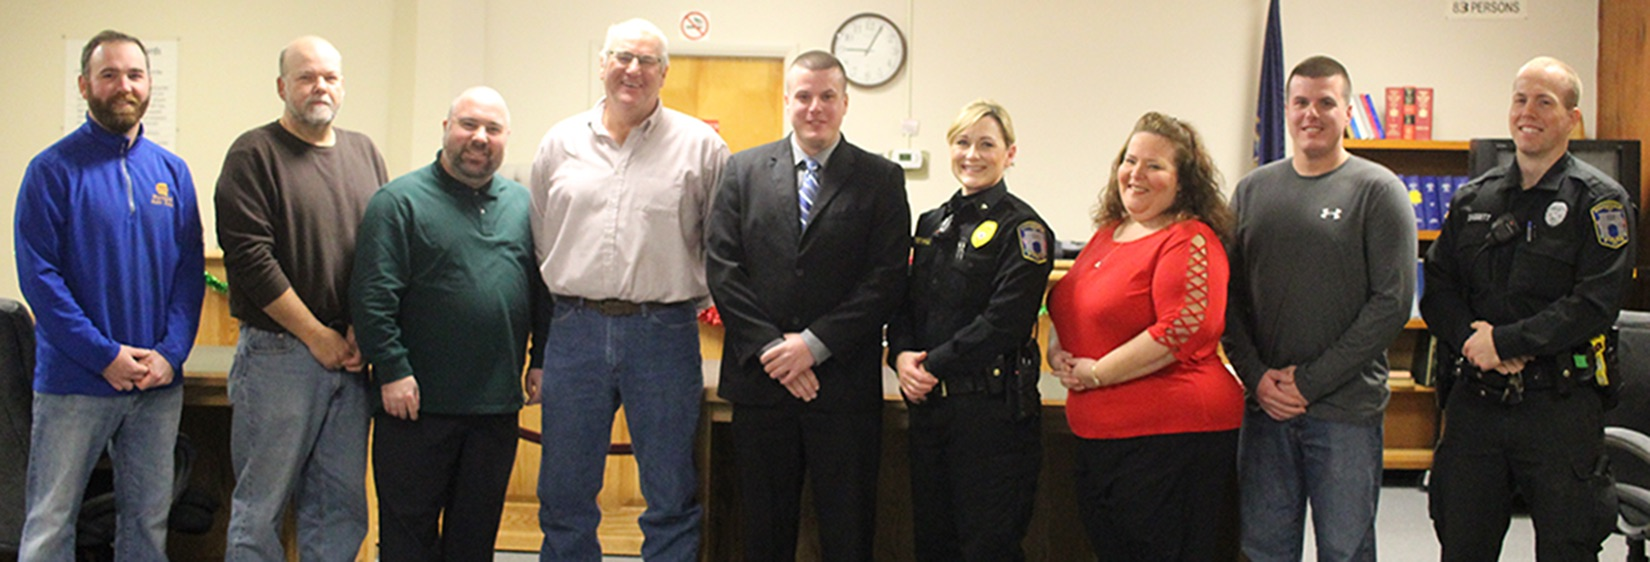 Gouverneur Police Department's newest officer, Nathan B. Sheen of Gouverneur, with supporters during his official swearing-in ceremony on Wednesday, January 2 in the municipal courtroom. From left: Village of Gouverneur Deputy Mayor Charles Newvine, Village of Gouverneur Trustee Rick Wood, Village of Gouverneur Trustee Troy Besaw, Jeff Sheen (Nathan's father), Nathan B. Sheen, Village of Gouverneur Chief of Police Laurina Greenhill, Village of Gouverneur Clerk/Treasurer Barbara Finnie, Gouverneur Police Officer Jesse Sheen (Nathan's twin brother), and Gouverneur Police Department Ptl. Alexander Daggett. (Rachel Hunter photo)